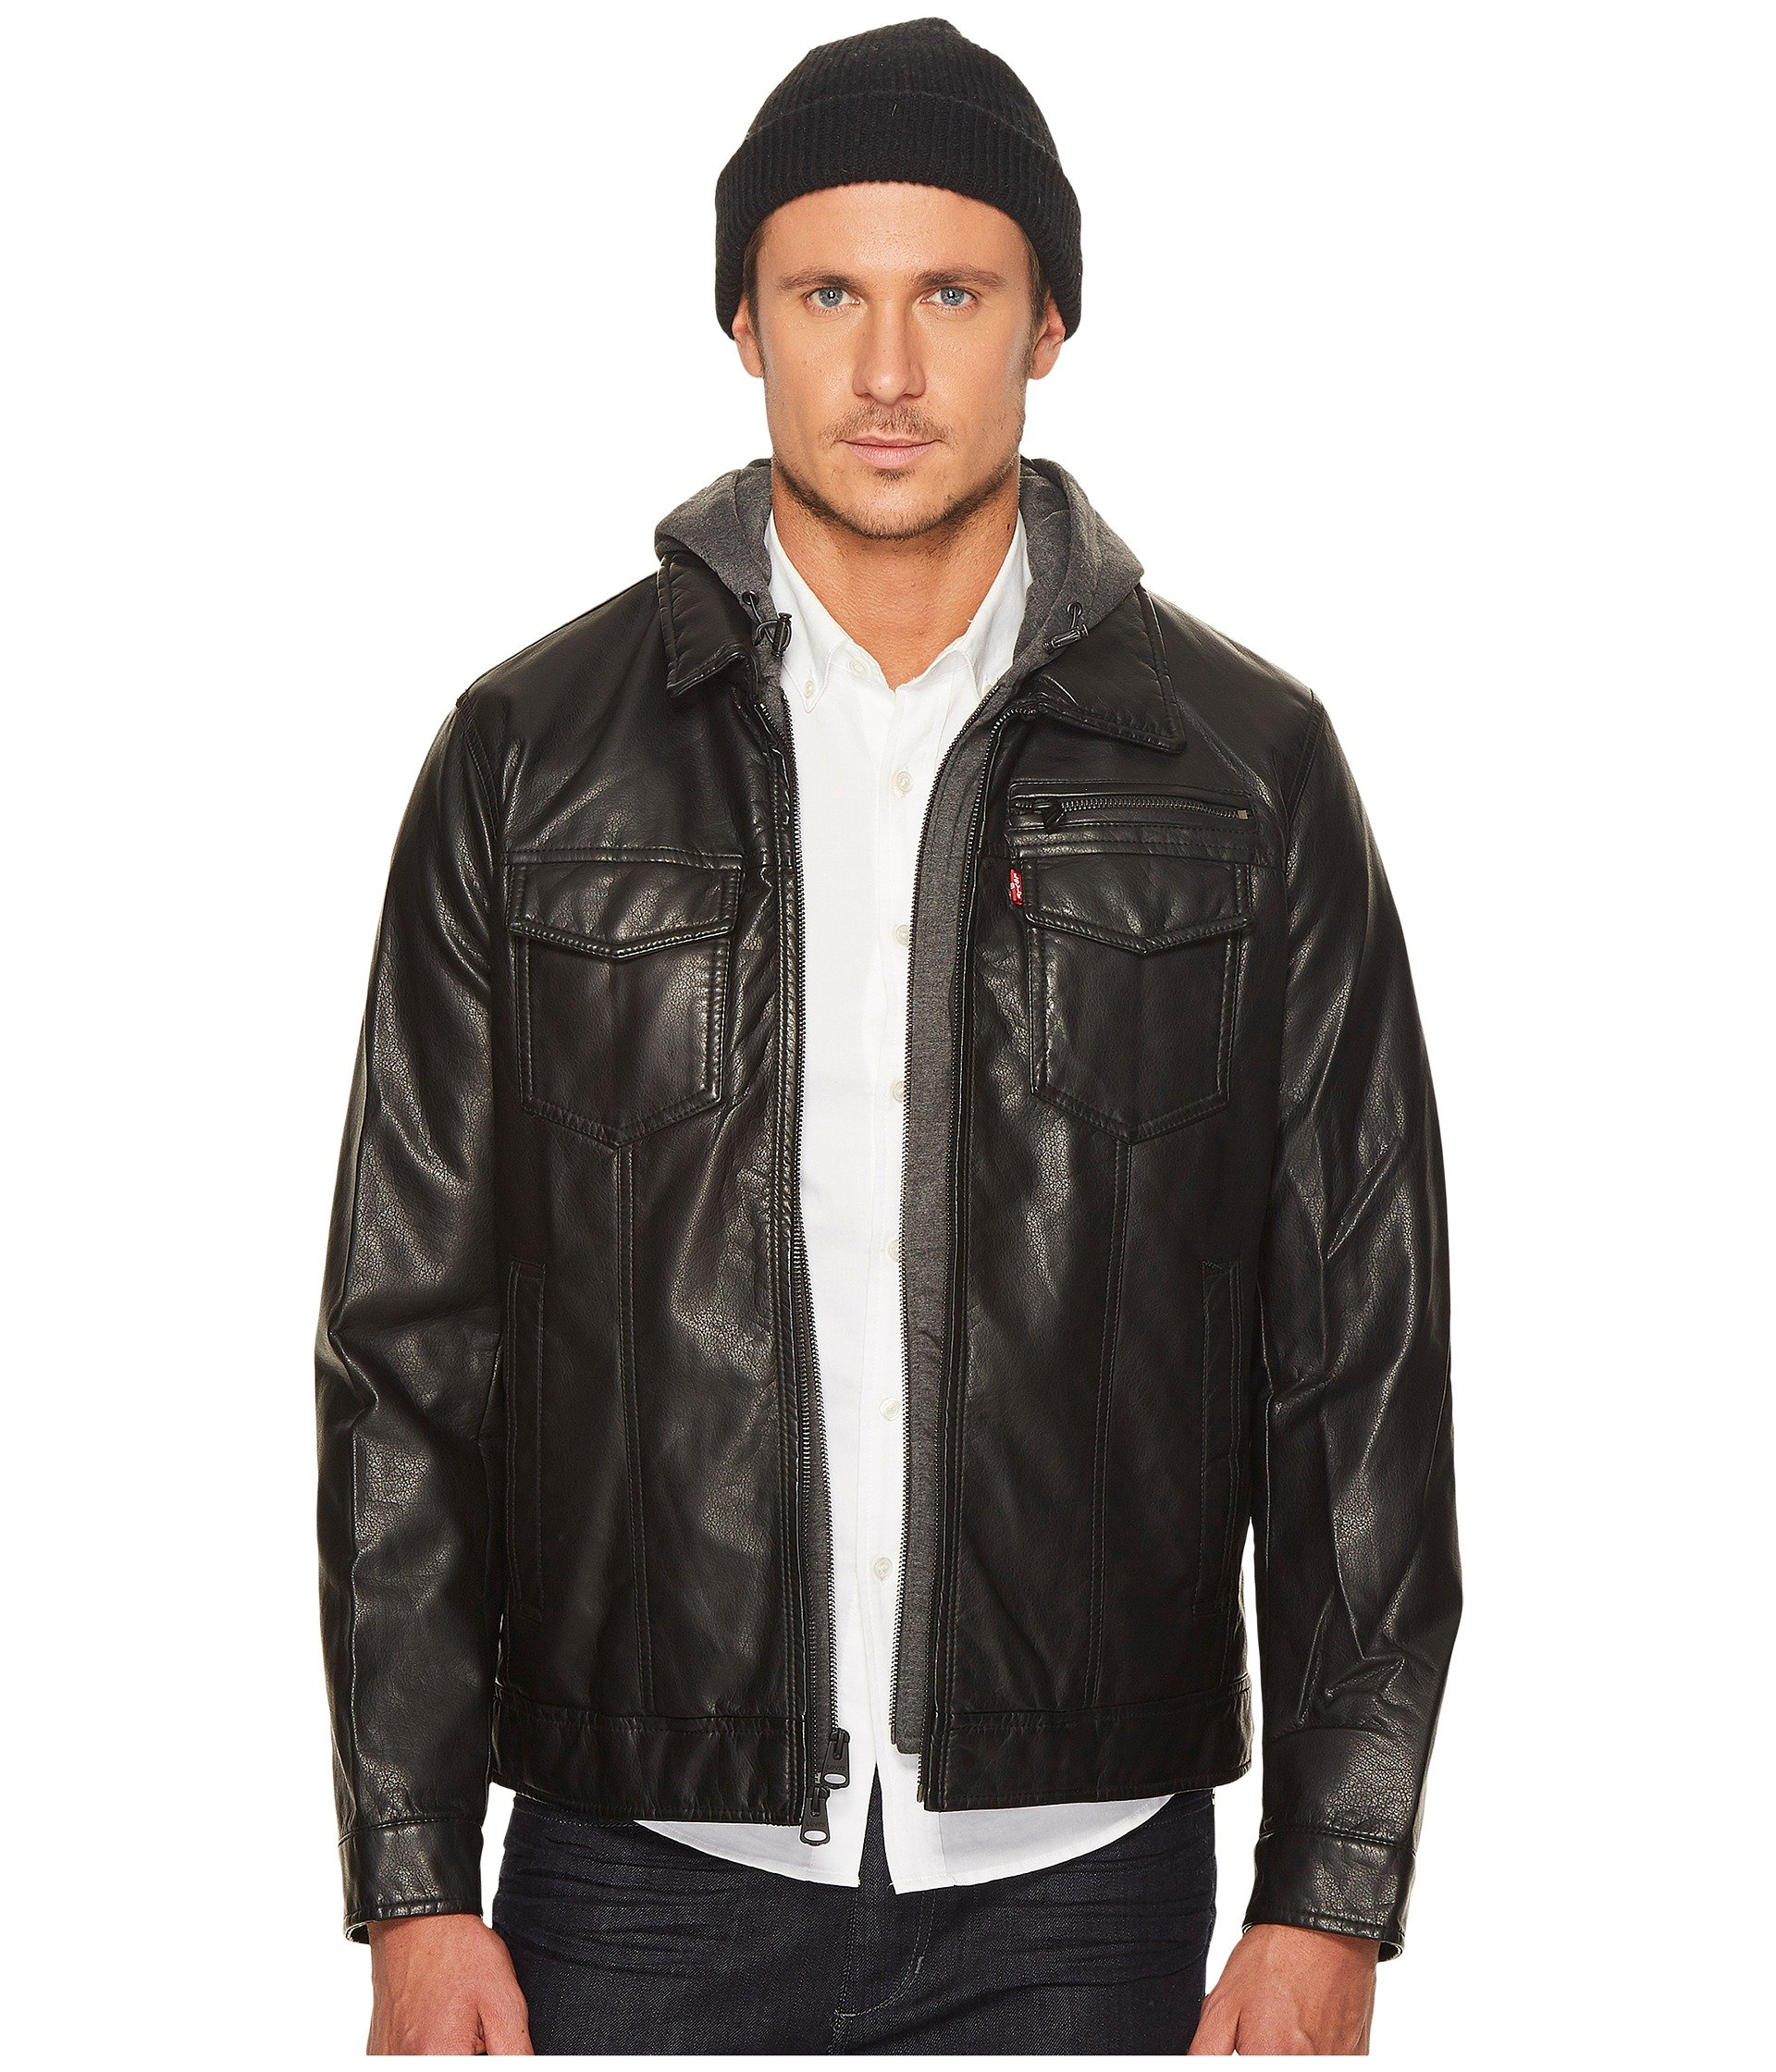 Levis Coats Outerwear Men Shipped Free At Zappos Jaket Parka Blazer Baby Canvas Cotton Faux Leather Trucker With Jersey Hood And Fleece Lining